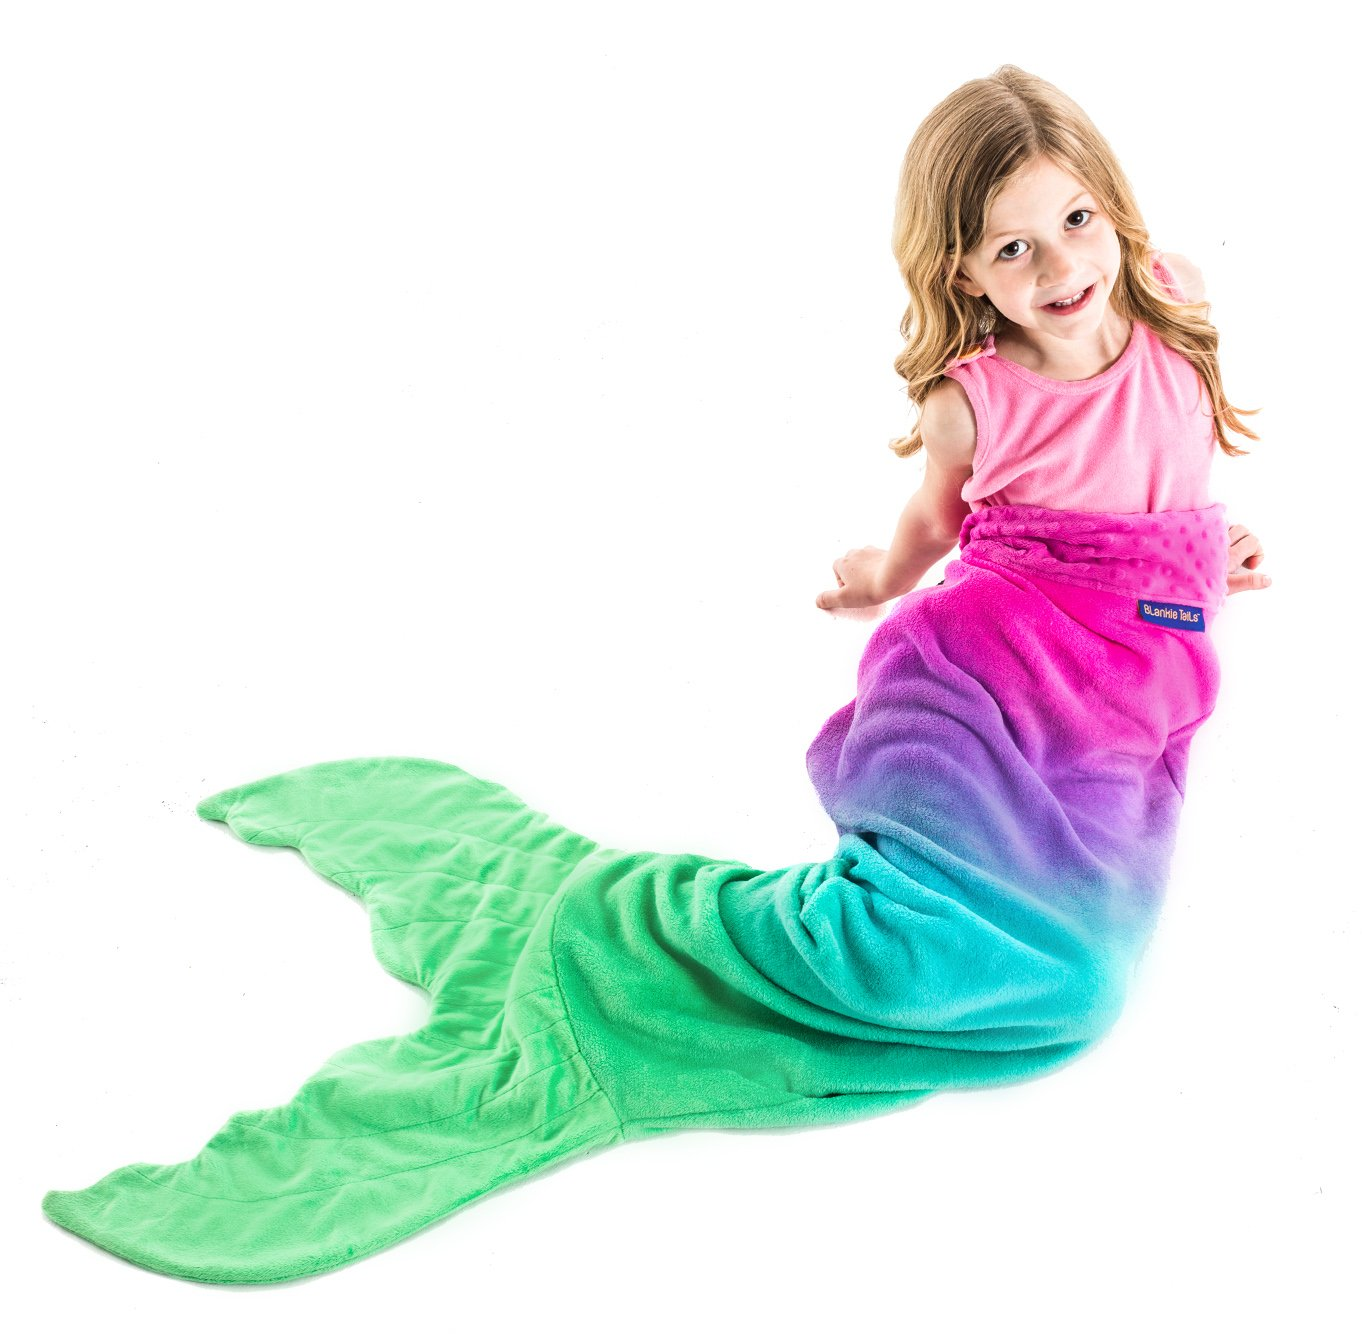 The Original Blankie Tails Mermaid Tail Blanket (Youth Size), Ocean Blue/Aqua BT0001.1